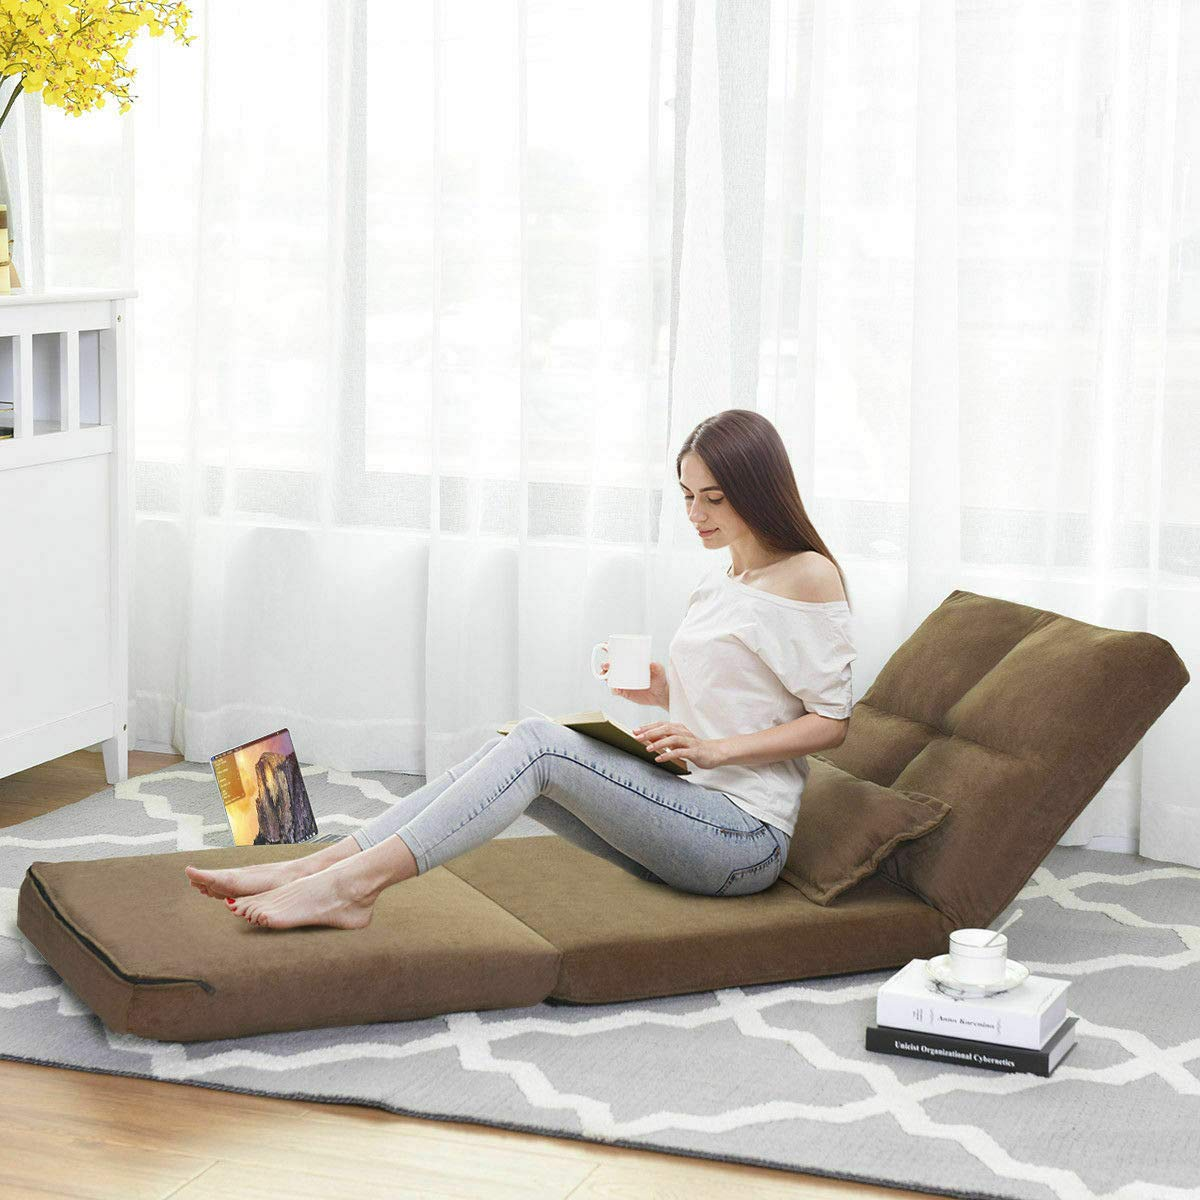 Amazon.com: Fold Down Chair Flip Out Lounger Convertible ...